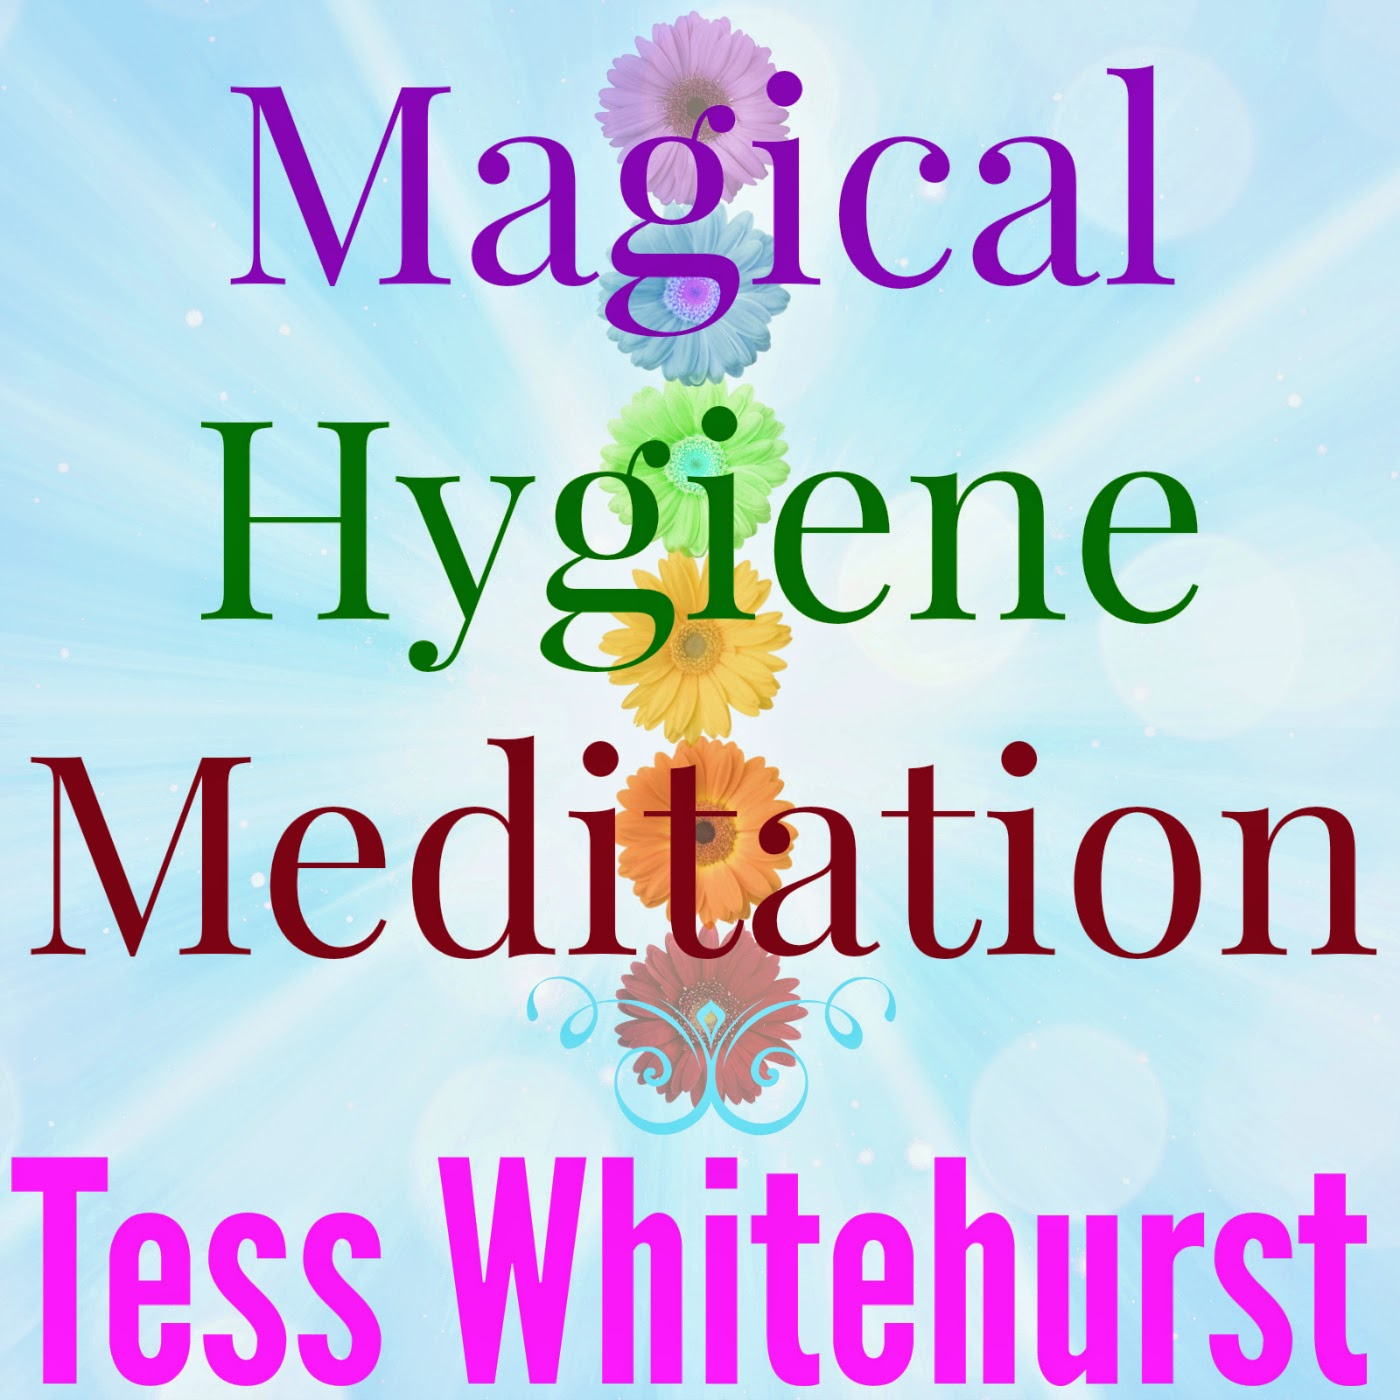 NEW MEDITATION RECORDING- $2.99!